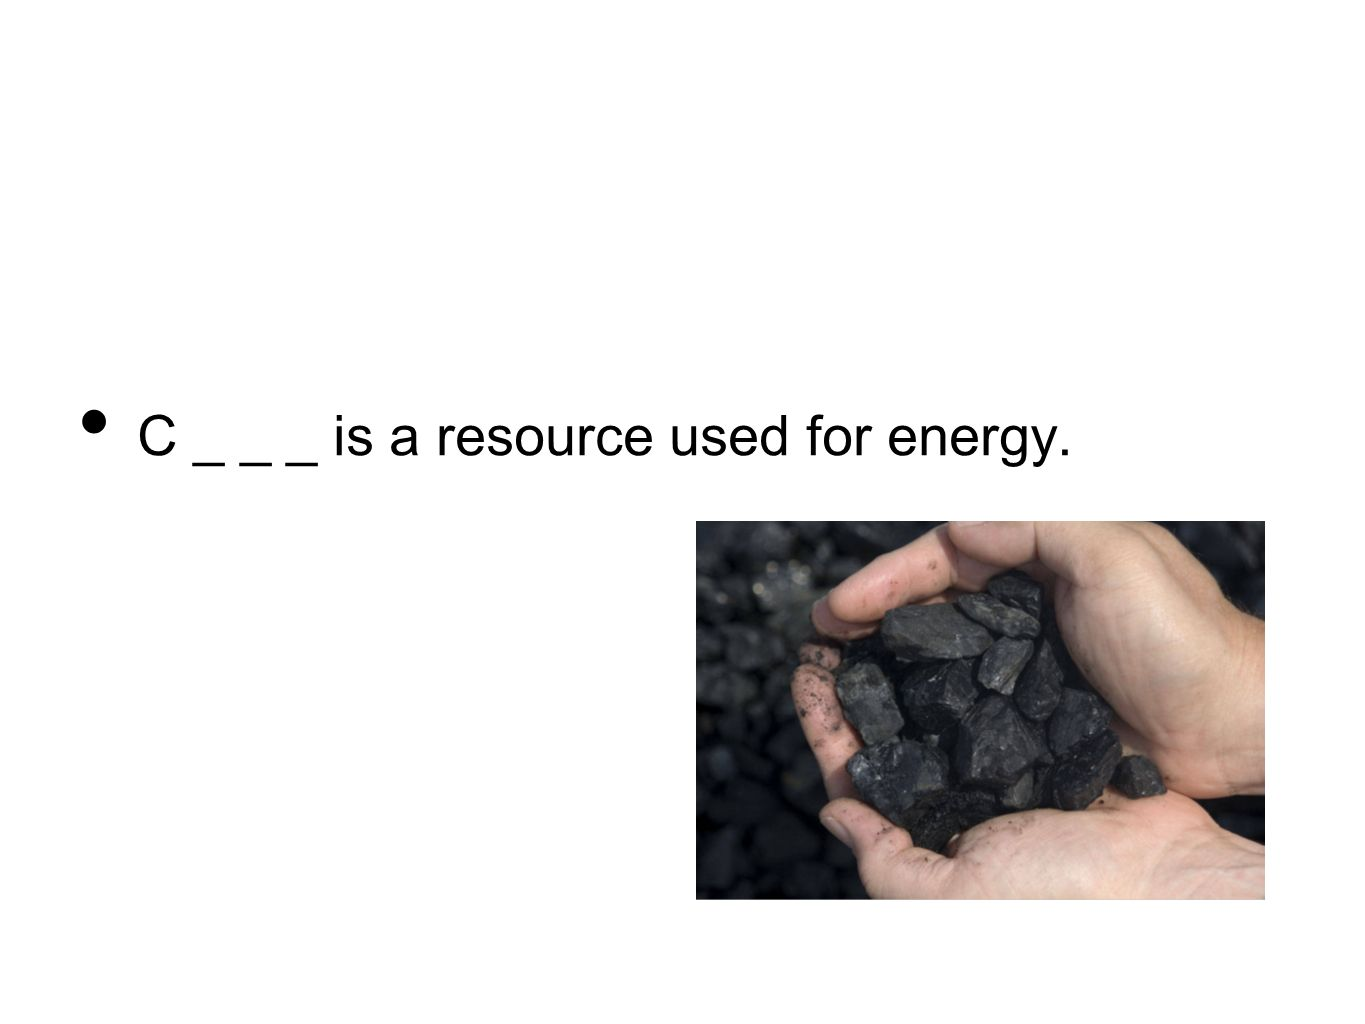 C _ _ _ is a resource used for energy.